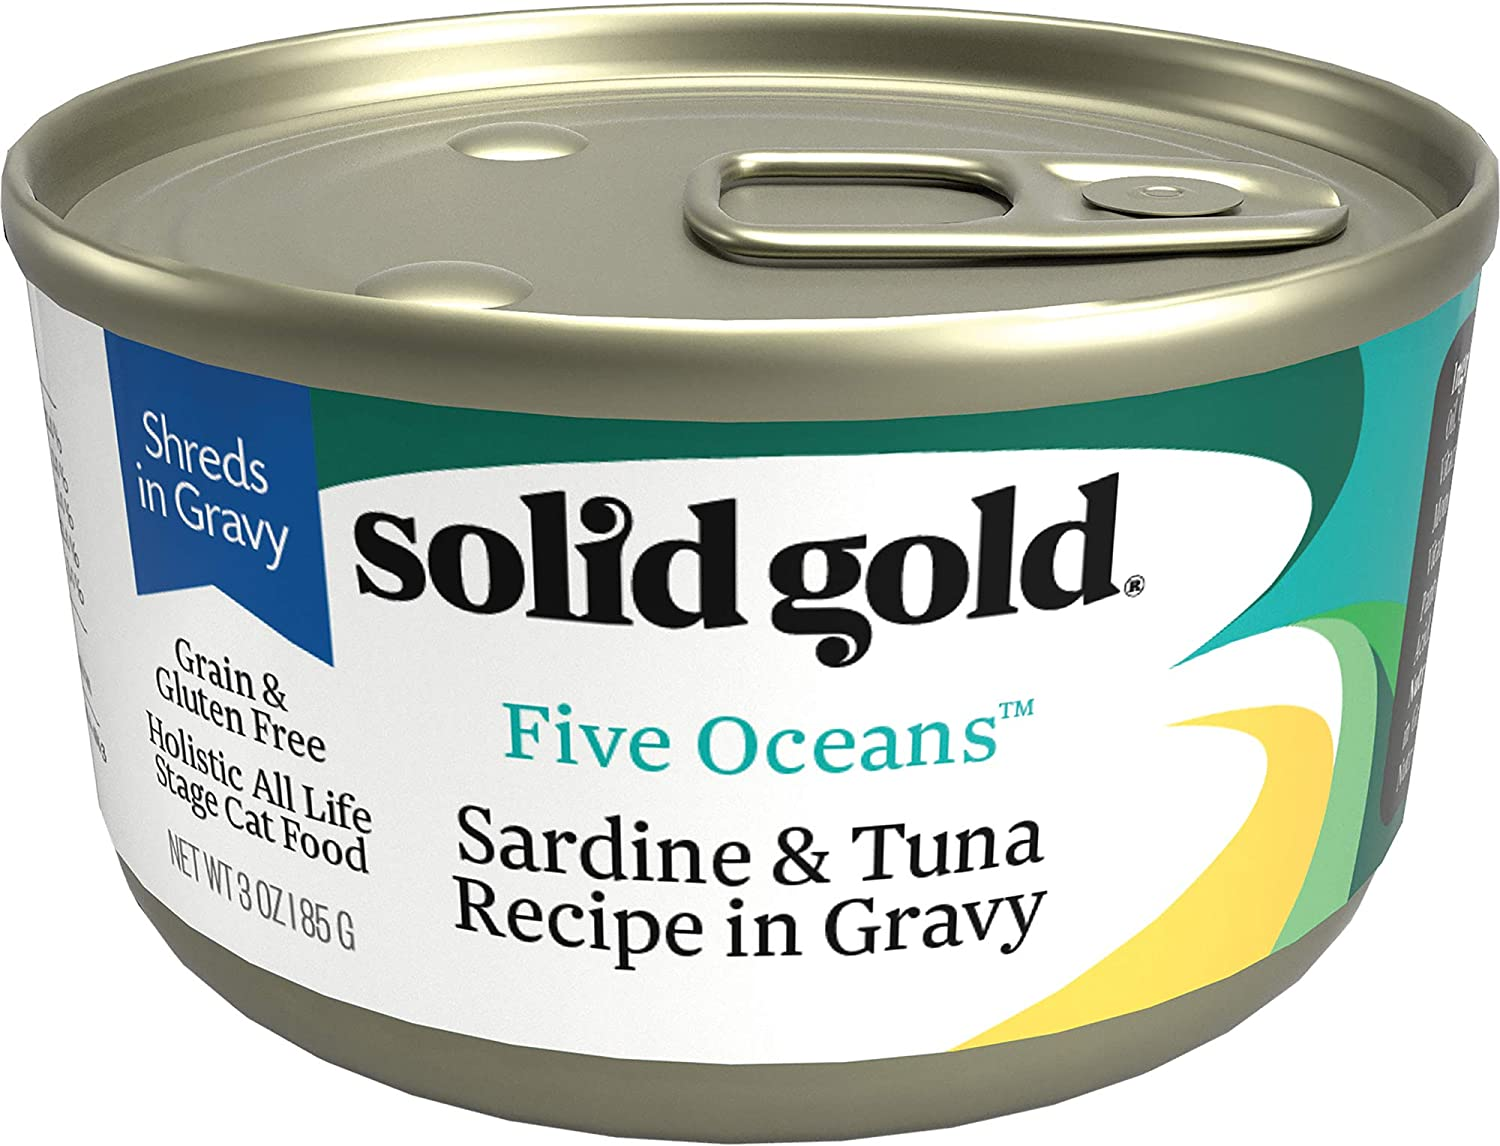 Solid Gold - Five Oceans Holistic Grain-Free Wet Cat Food for All Life Stages - Real Seafood with Gravy